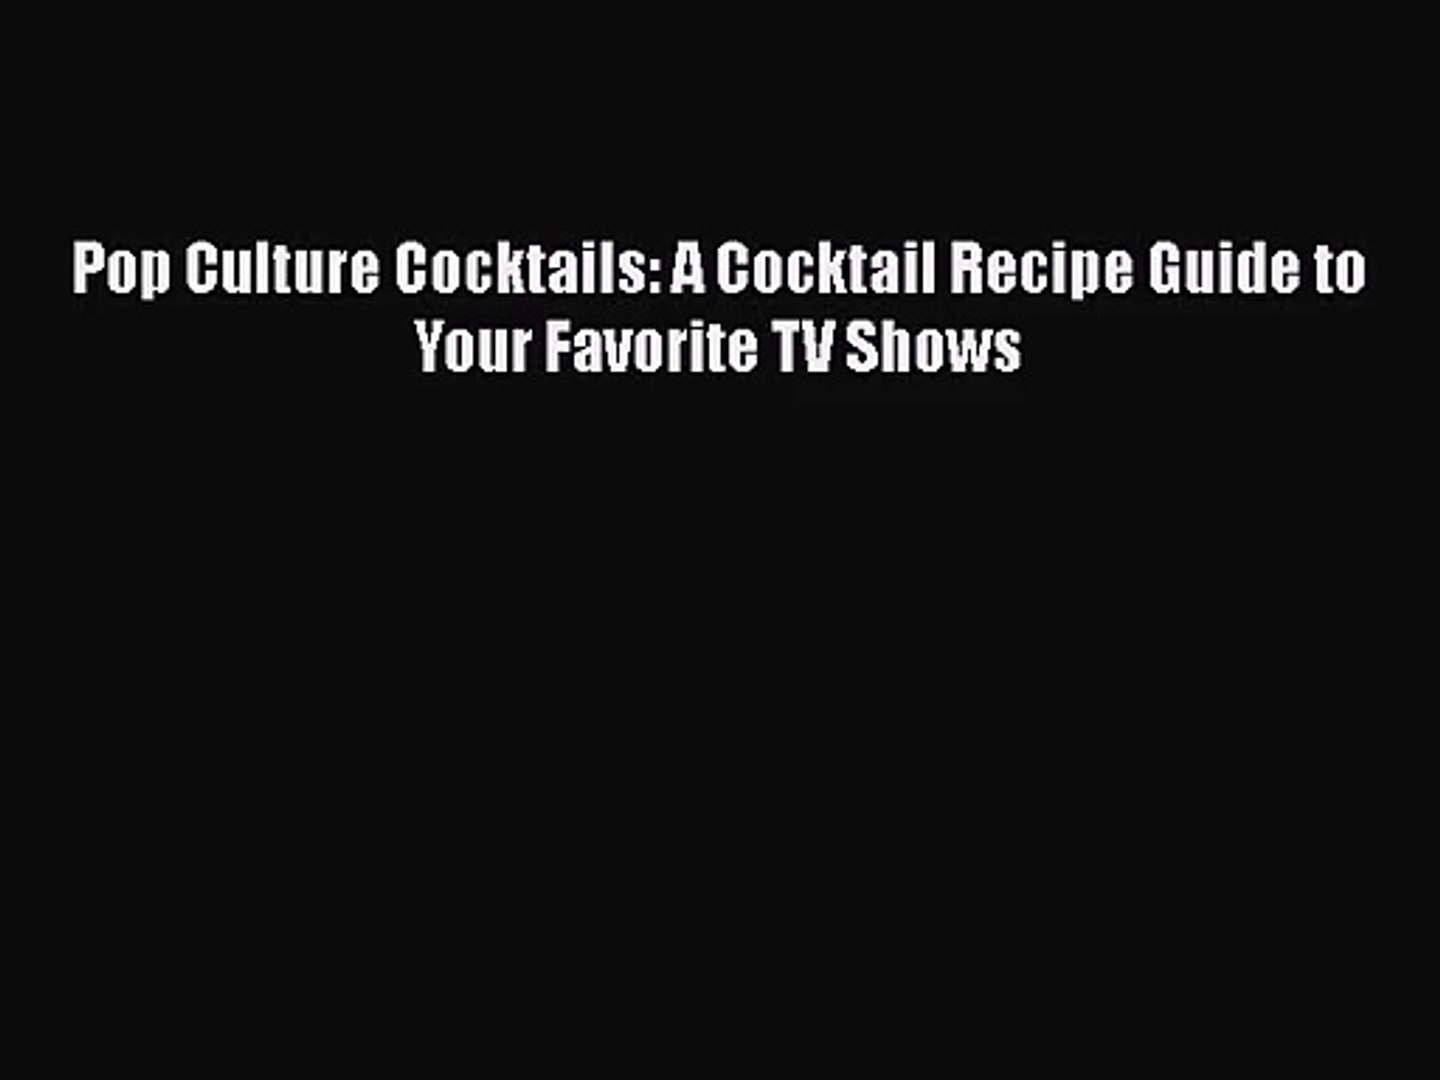 Download Pop Culture Cocktails: A Cocktail Recipe Guide to Your Favorite TV Shows Ebook Free